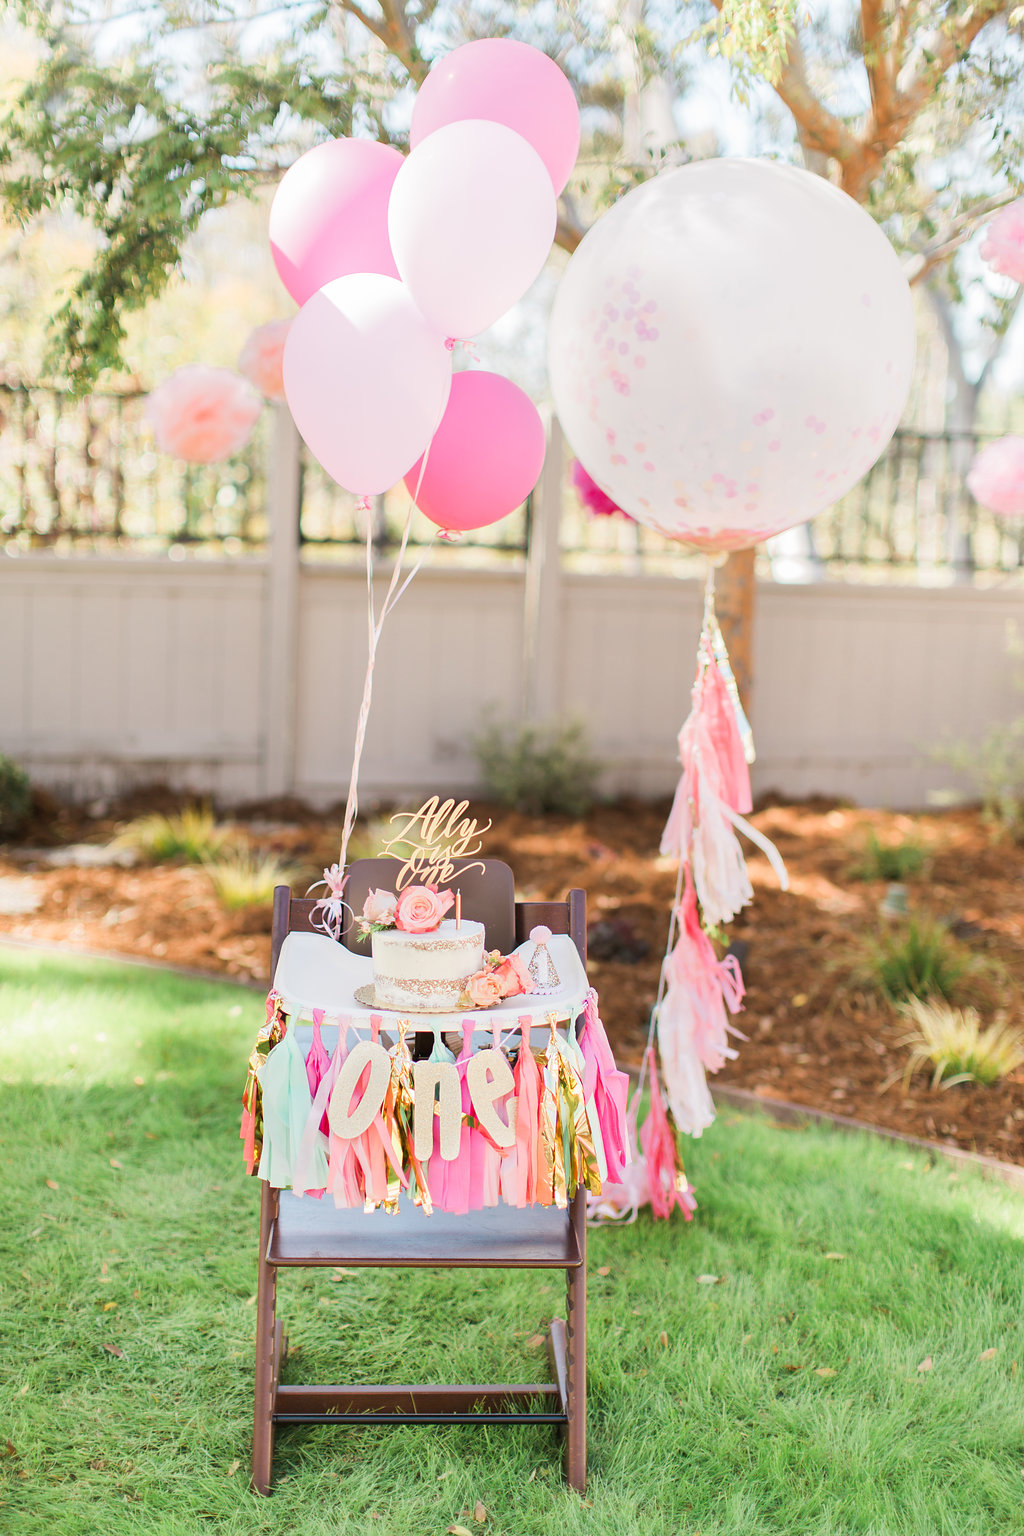 The hostess knew she wanted to embrace the bright, happy spirit of her little one year old so the color scheme was a no brainer. Tying in the themes of music as well as cheerful colors achieved the perfect balance of a little bit boho, a little bit preppy and a whole lot of cuteness!